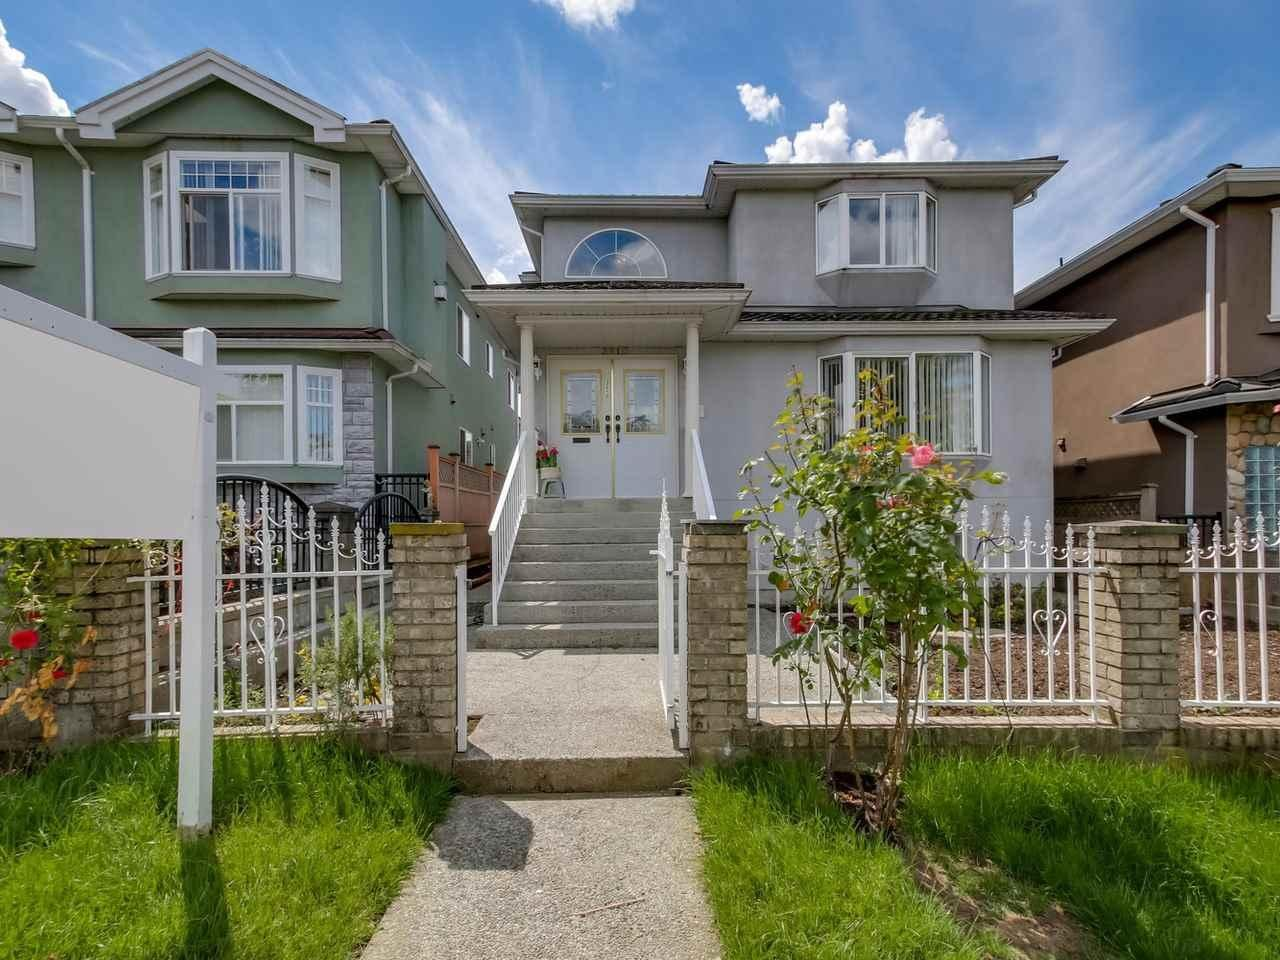 R2073087 - 3210 E 23RD AVENUE, Renfrew Heights, Vancouver, BC - House/Single Family